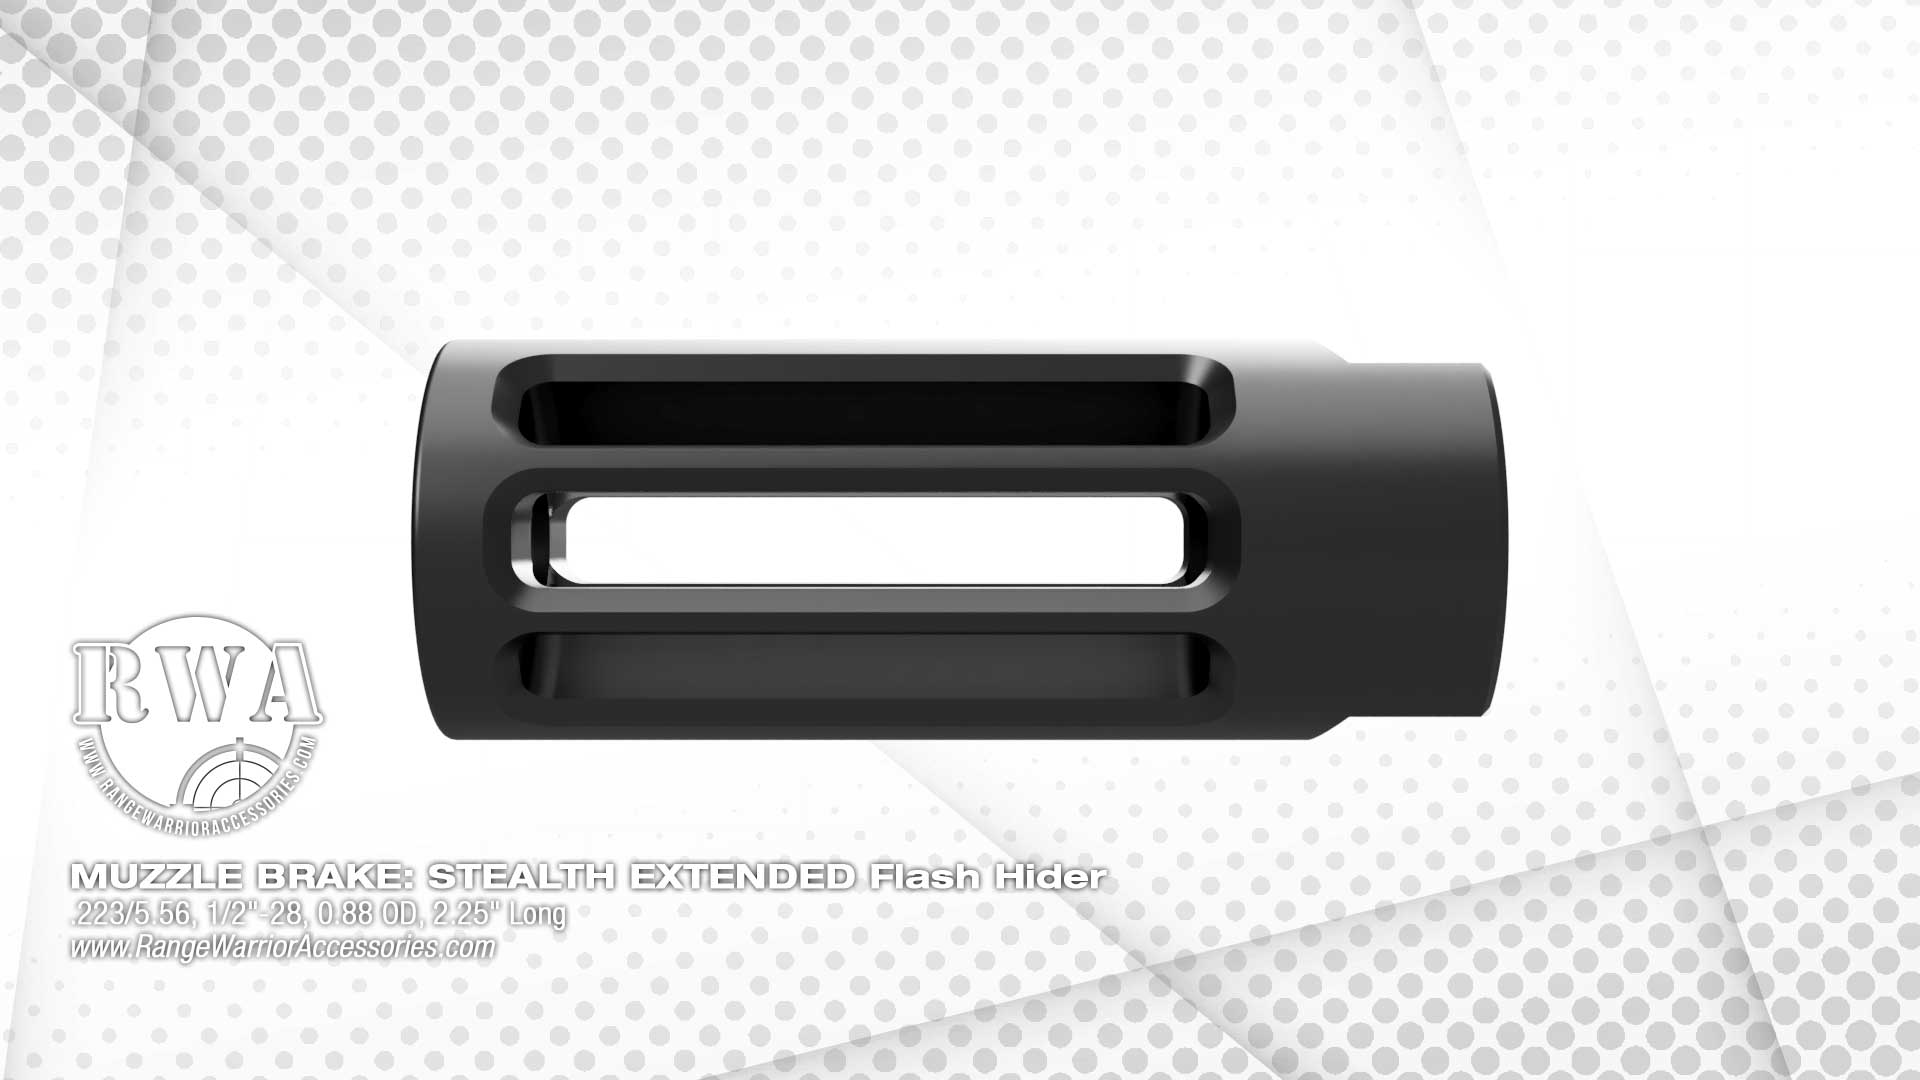 Stealth Extended Flash Hider